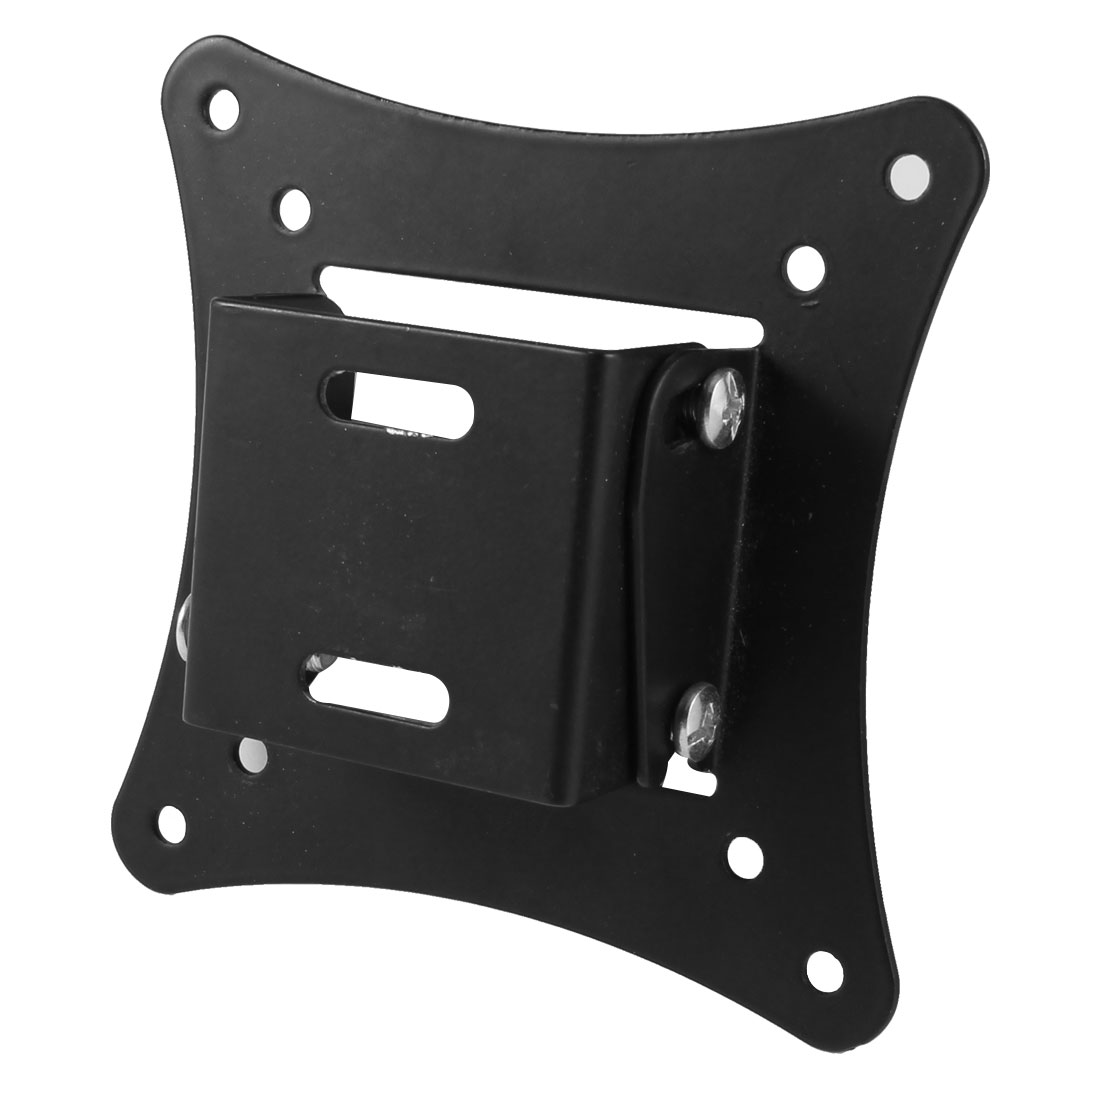 "Black Metal Wall Mount Rack Stand Bracket for 14""-26"" LCD Flat Panel TV"